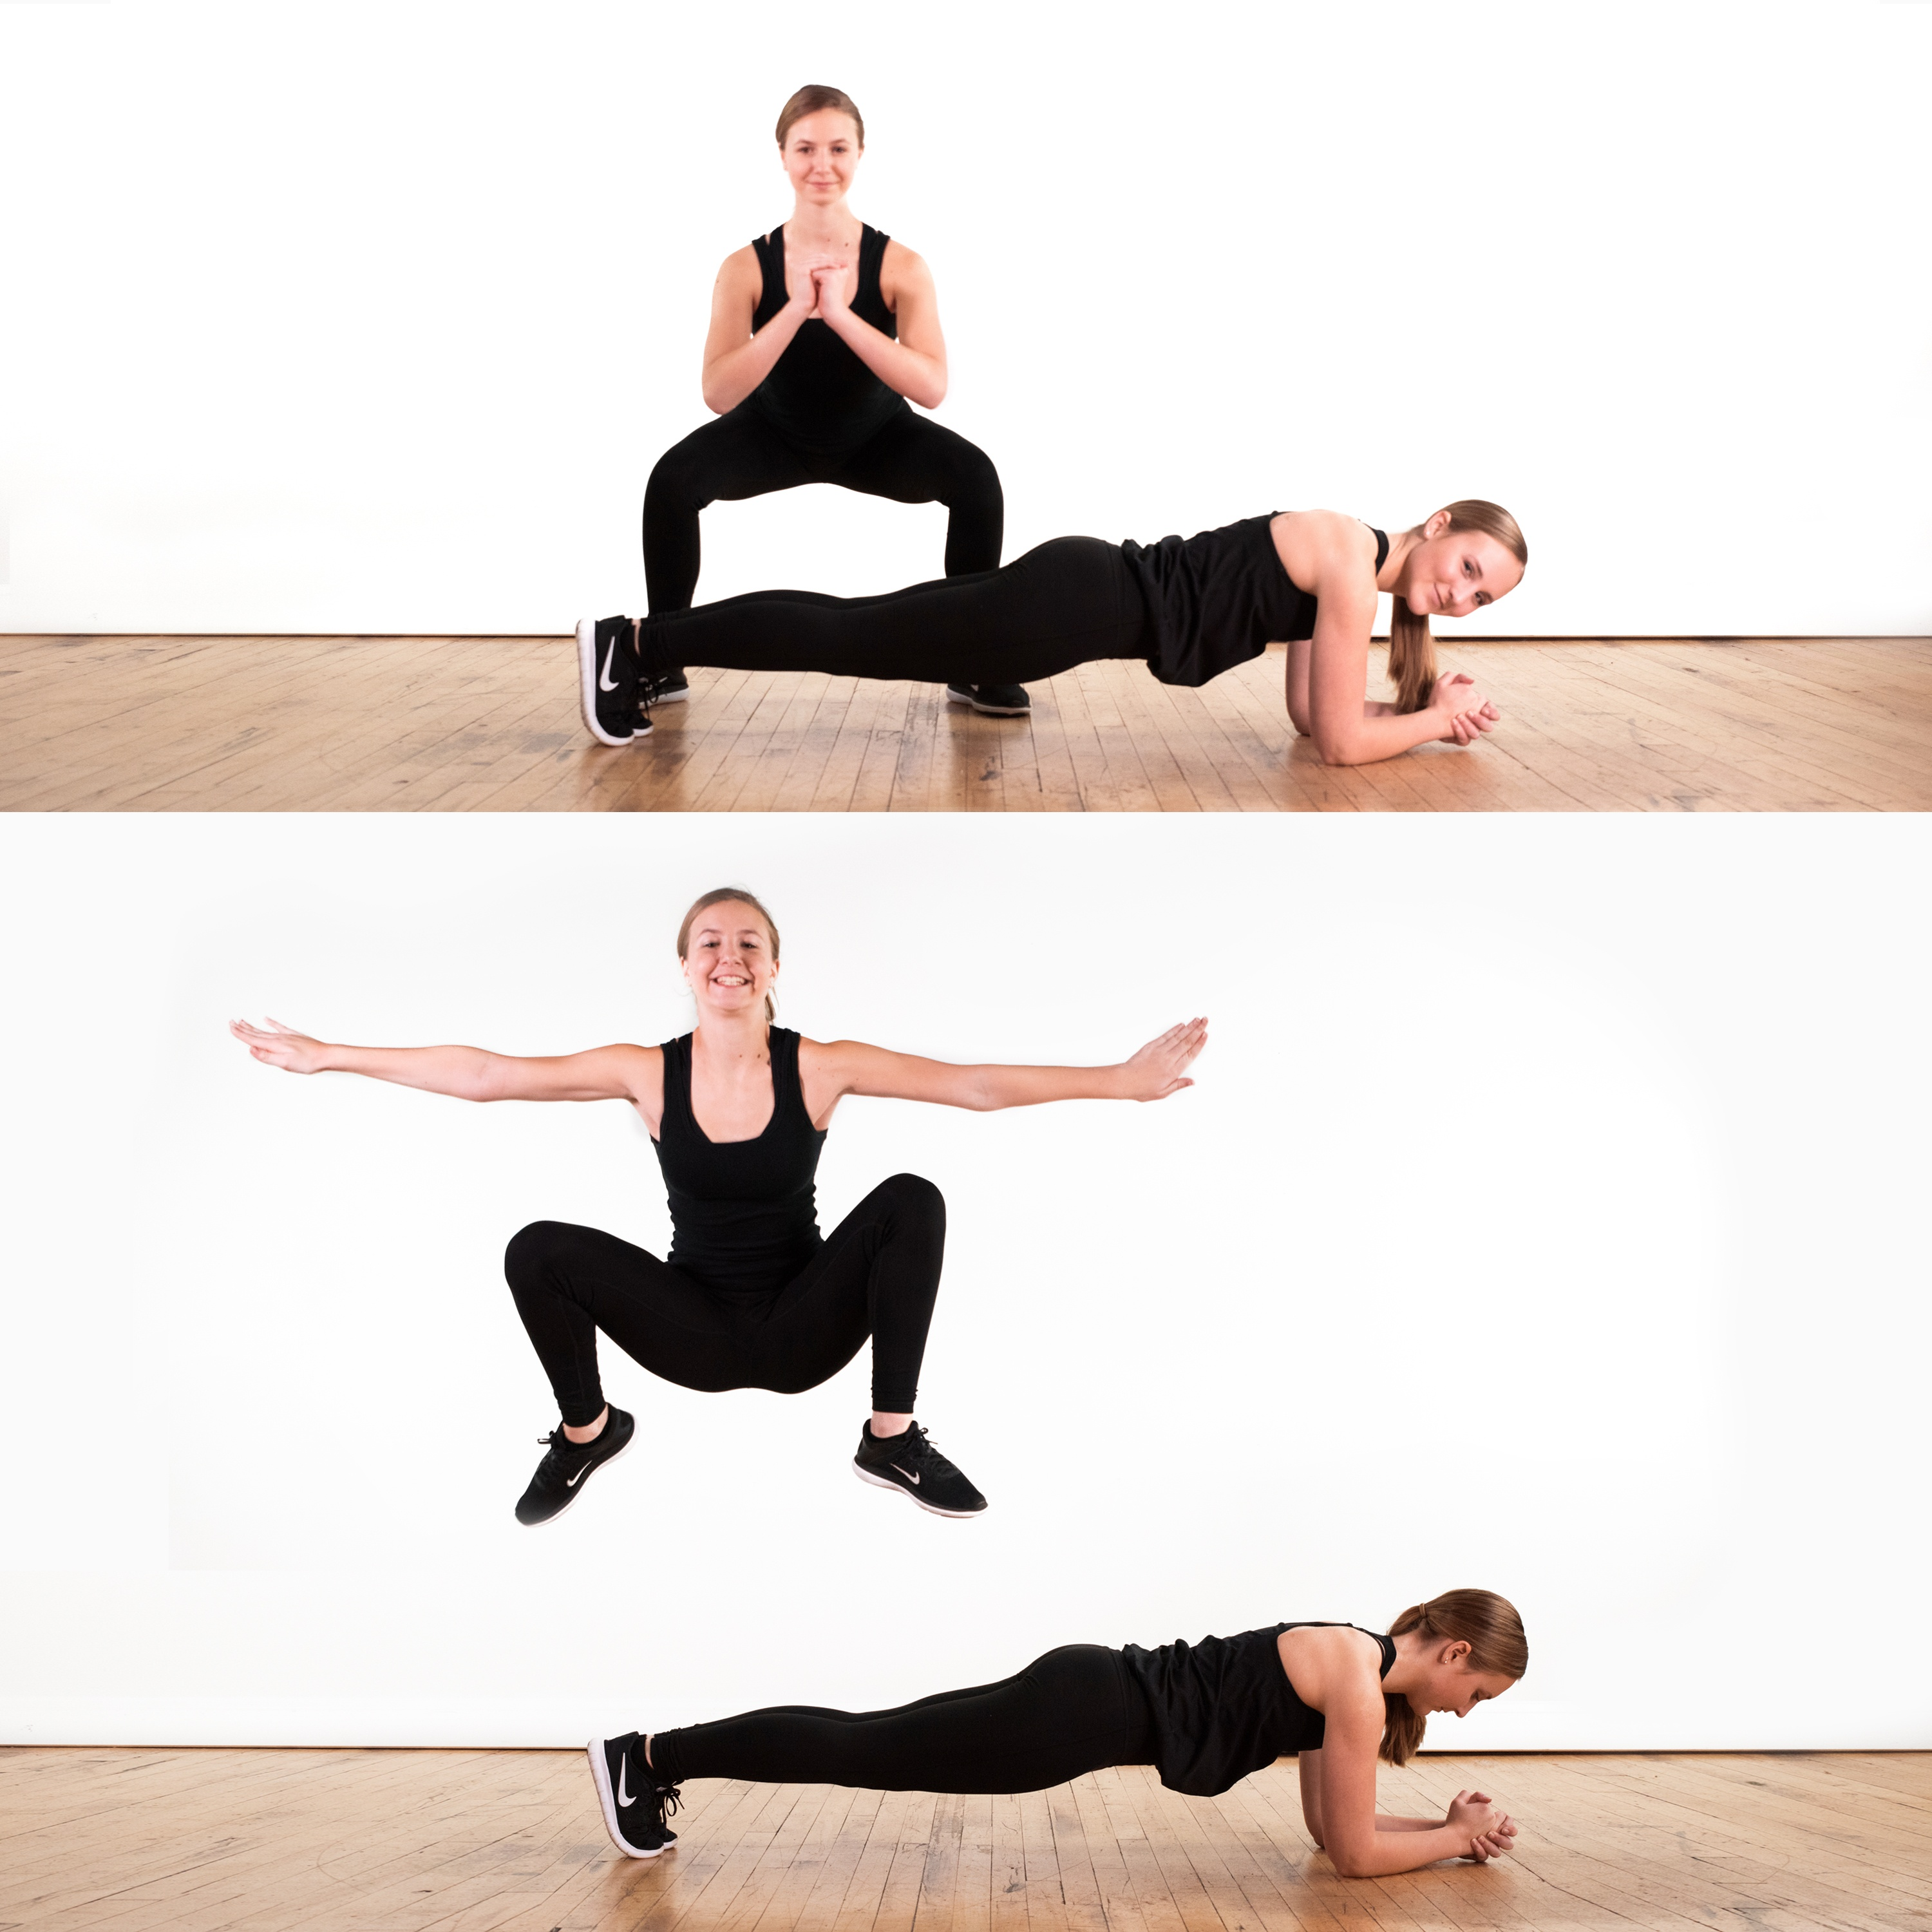 increase dancers jump height and power with plank excercises